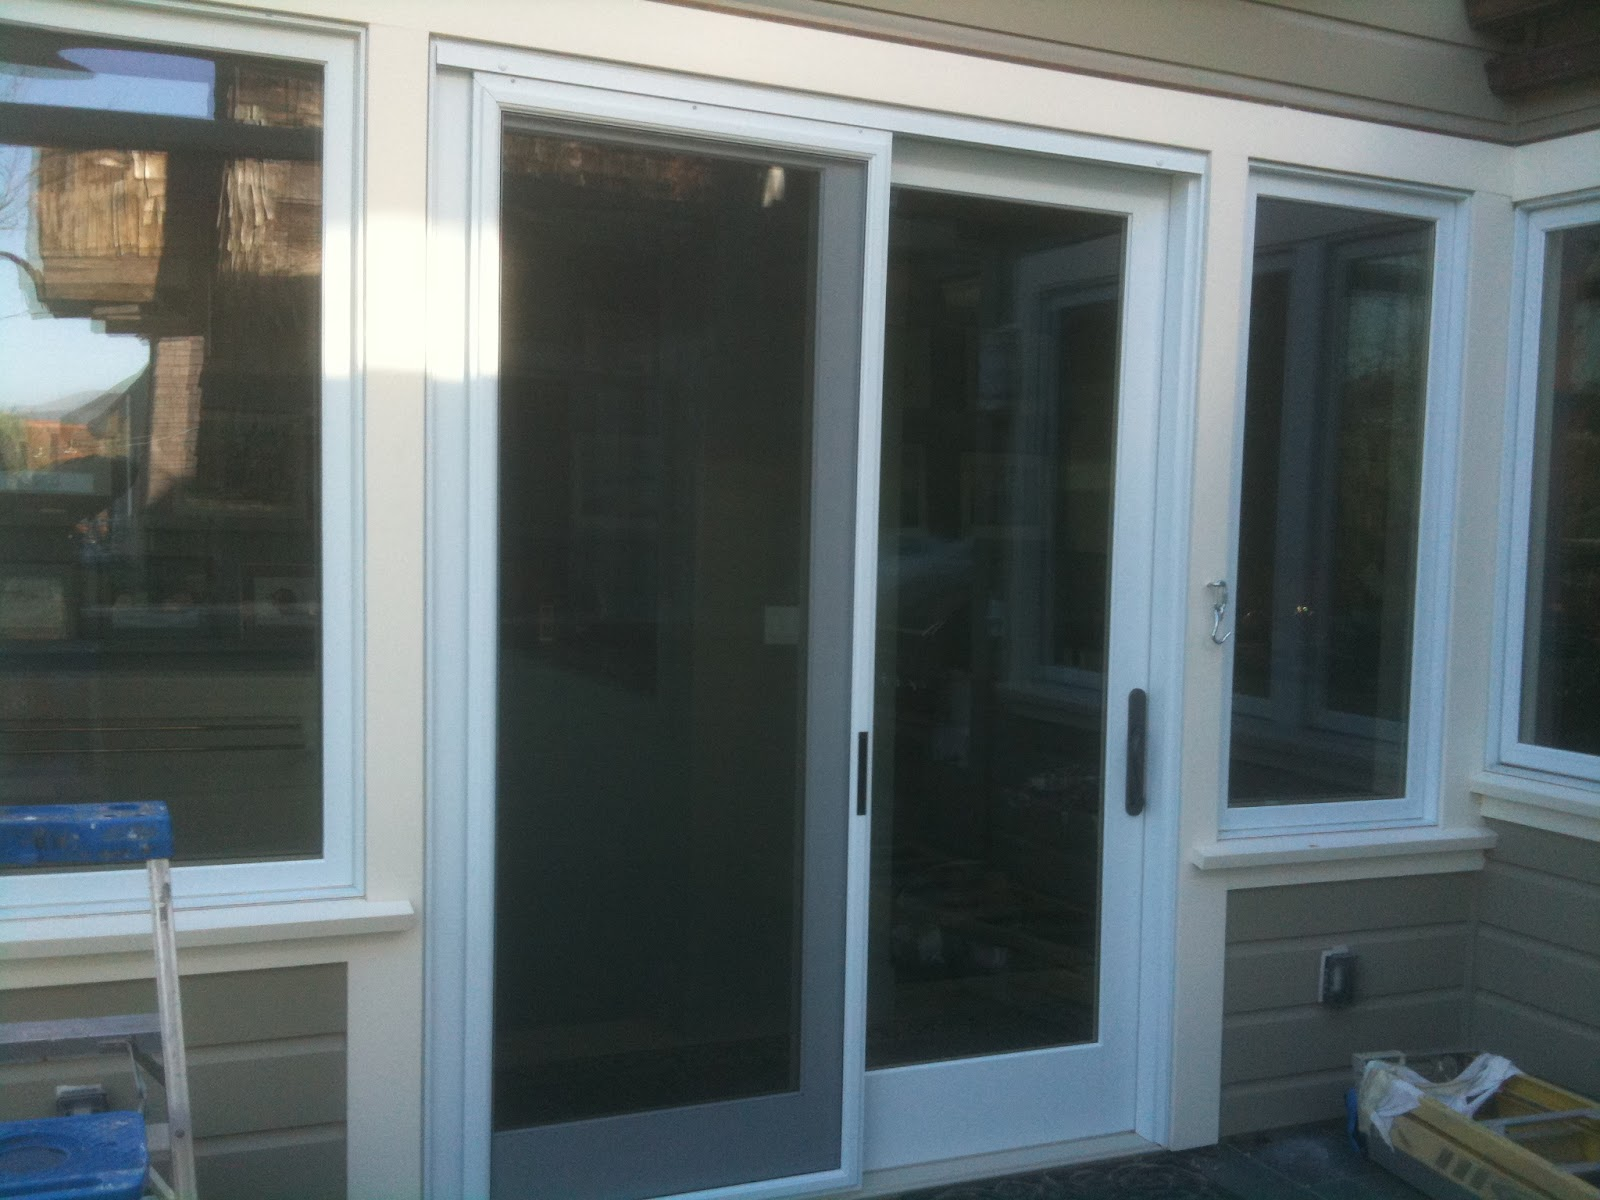 1200 #344C63  Traditions Steel Patio Door Patio Doors House Www Thermatru Com image Aluminum Clad Patio Doors 47231600